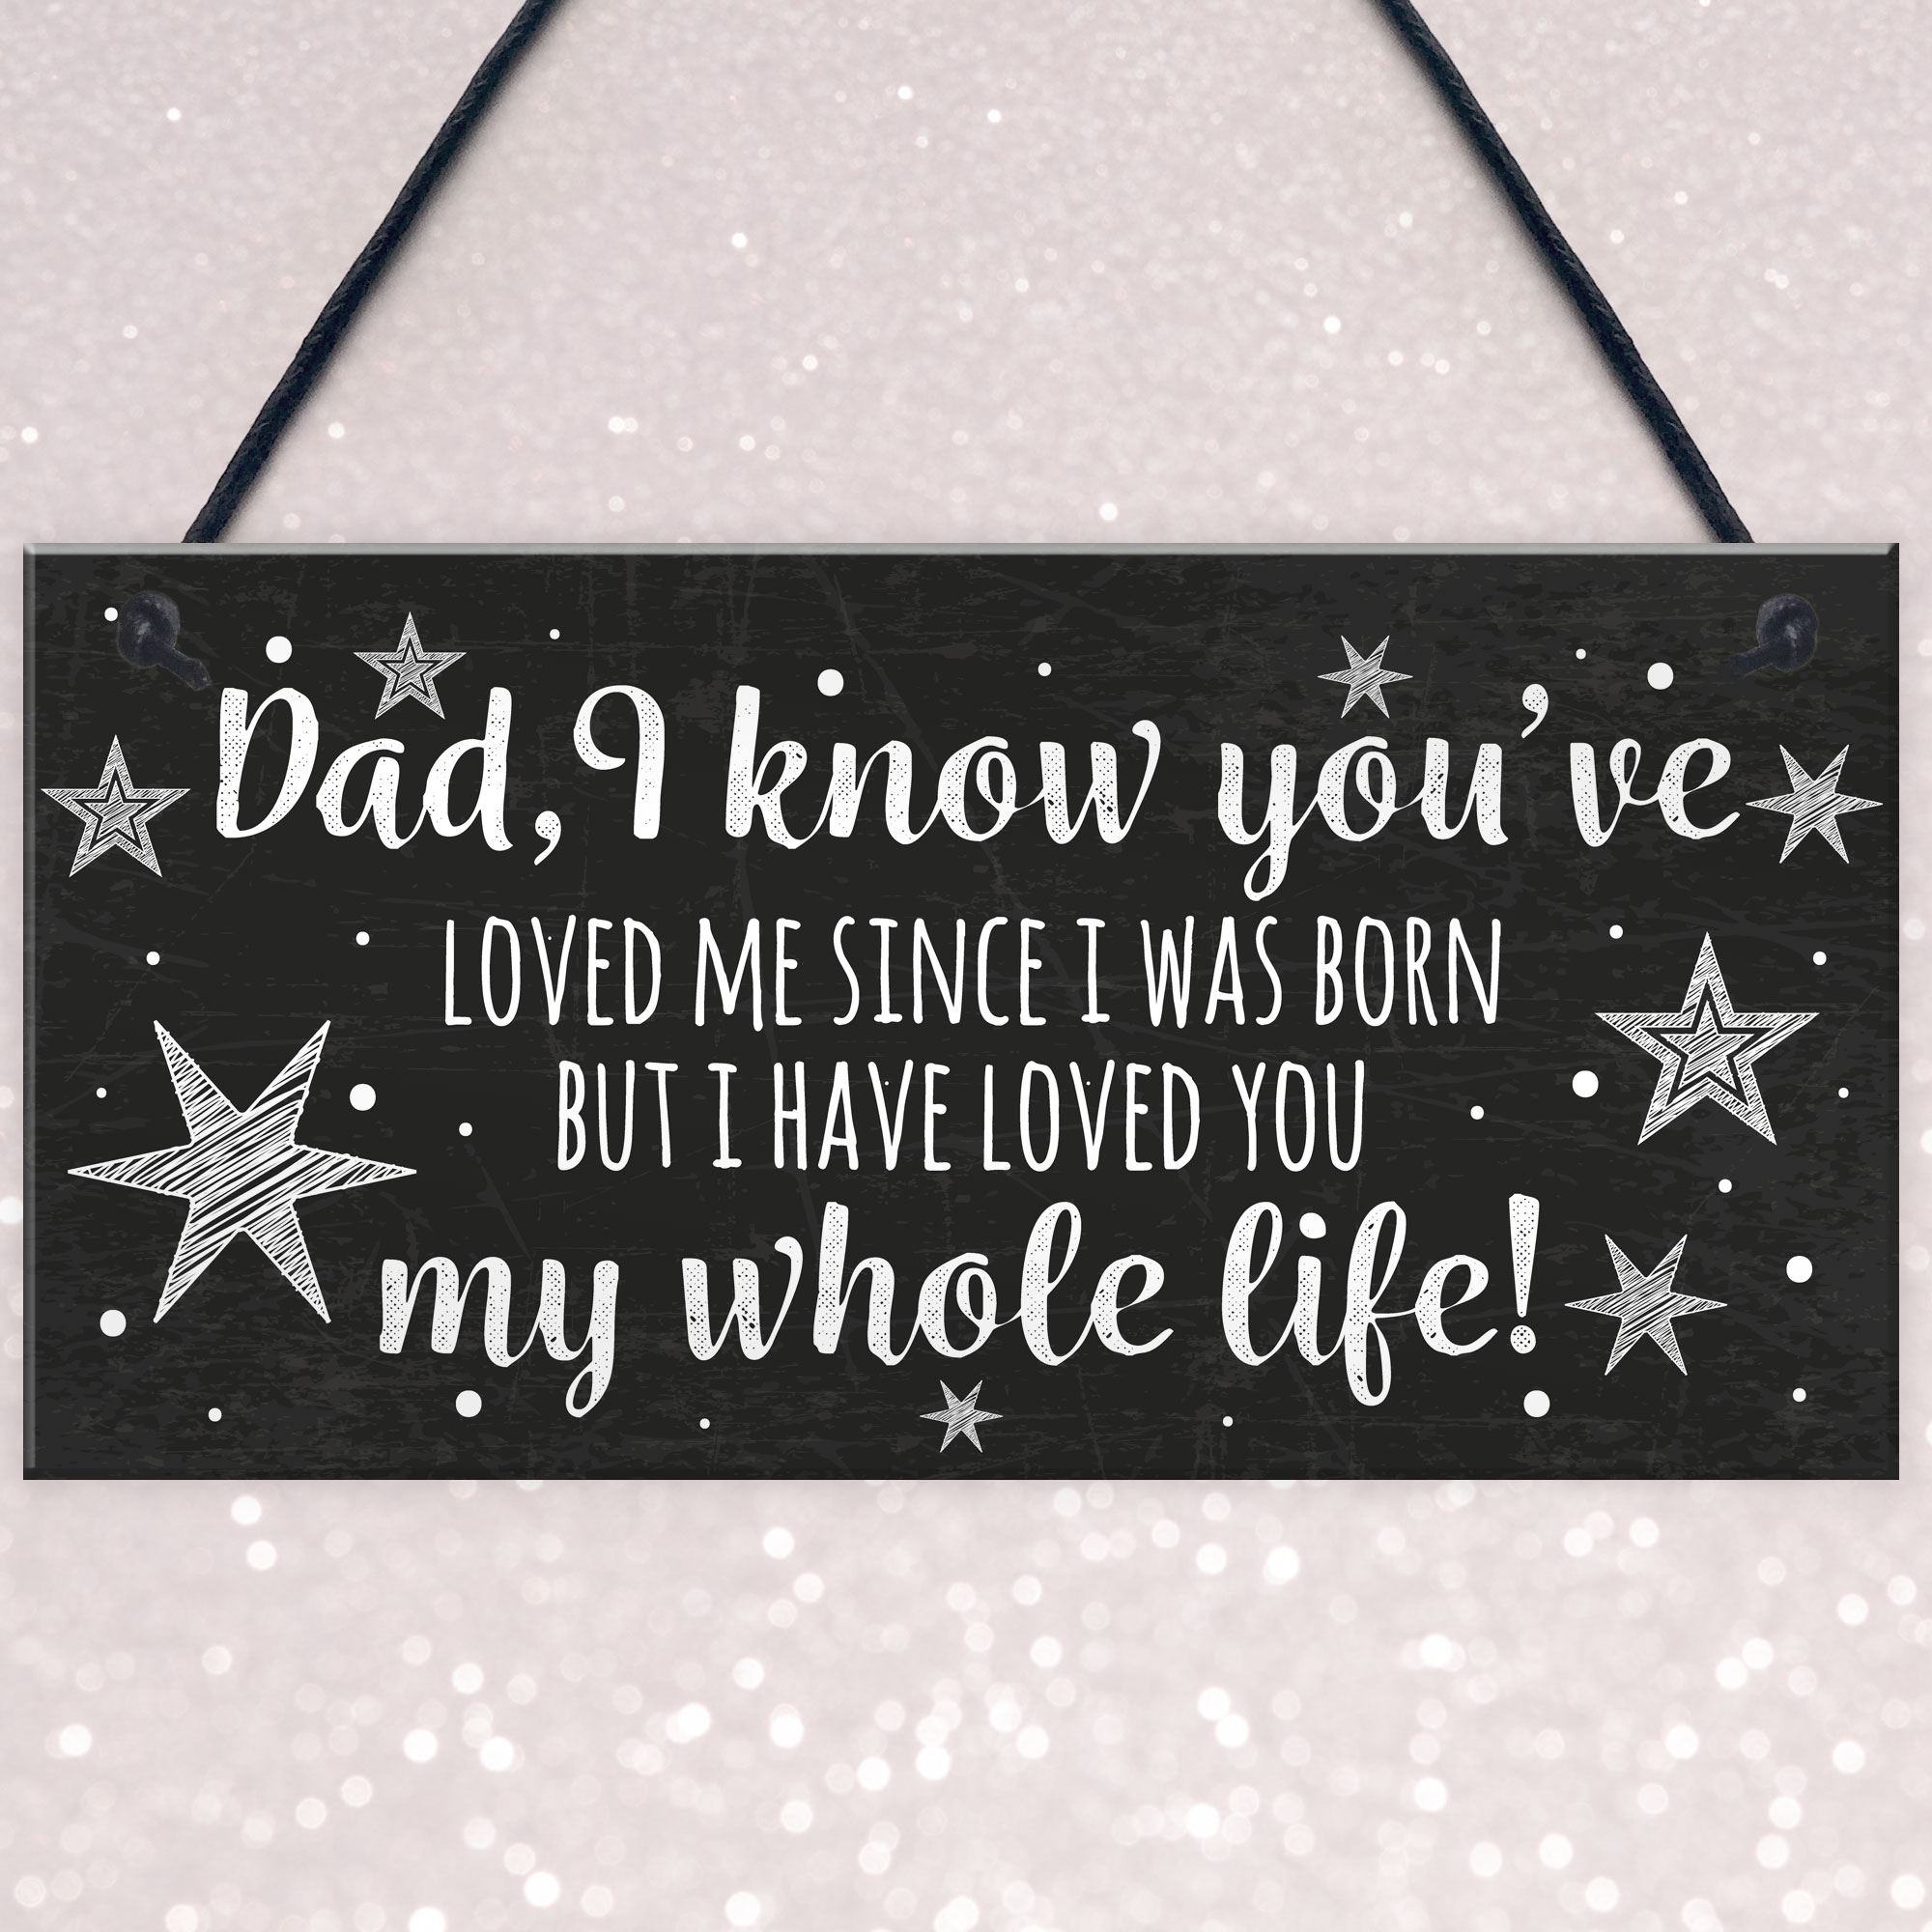 Details About Daddy Gifts From Daughter Dad Novelty Son Birthday Christmas Presents